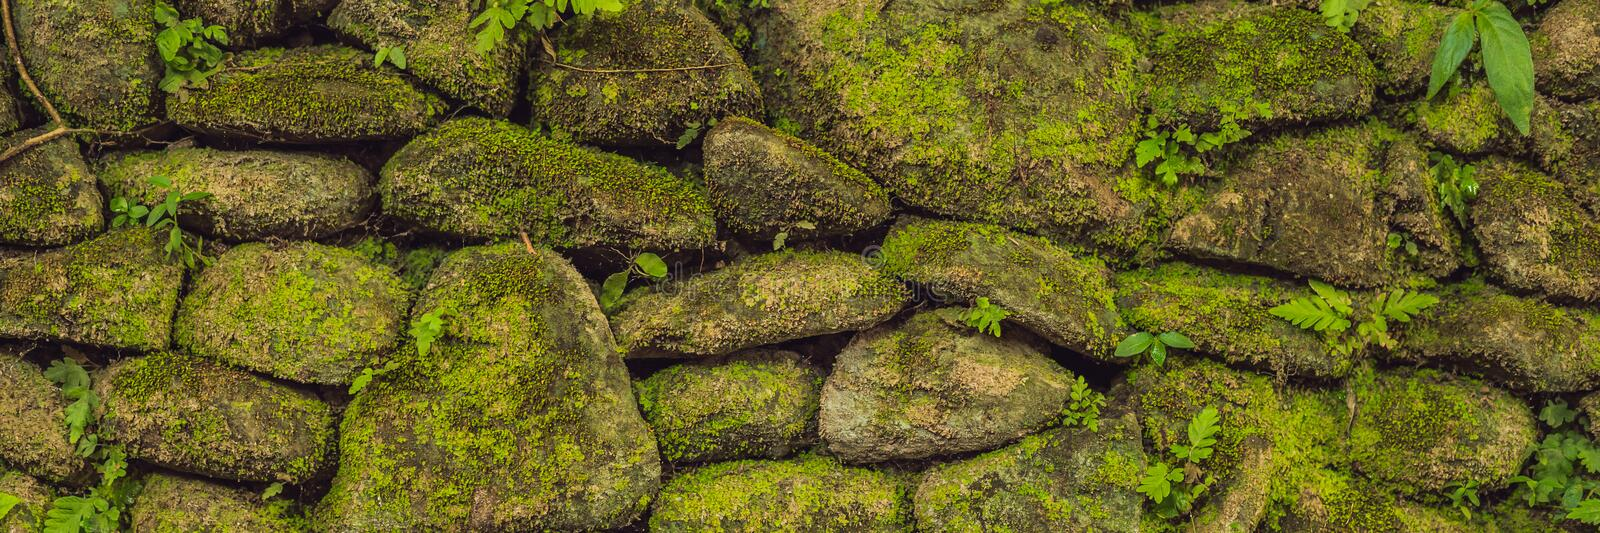 Texture of old stone wall covered green moss in Fort Rotterdam, Makassar - Indonesia BANNER, long format. Texture of old stone wall covered green moss in Fort royalty free stock photography